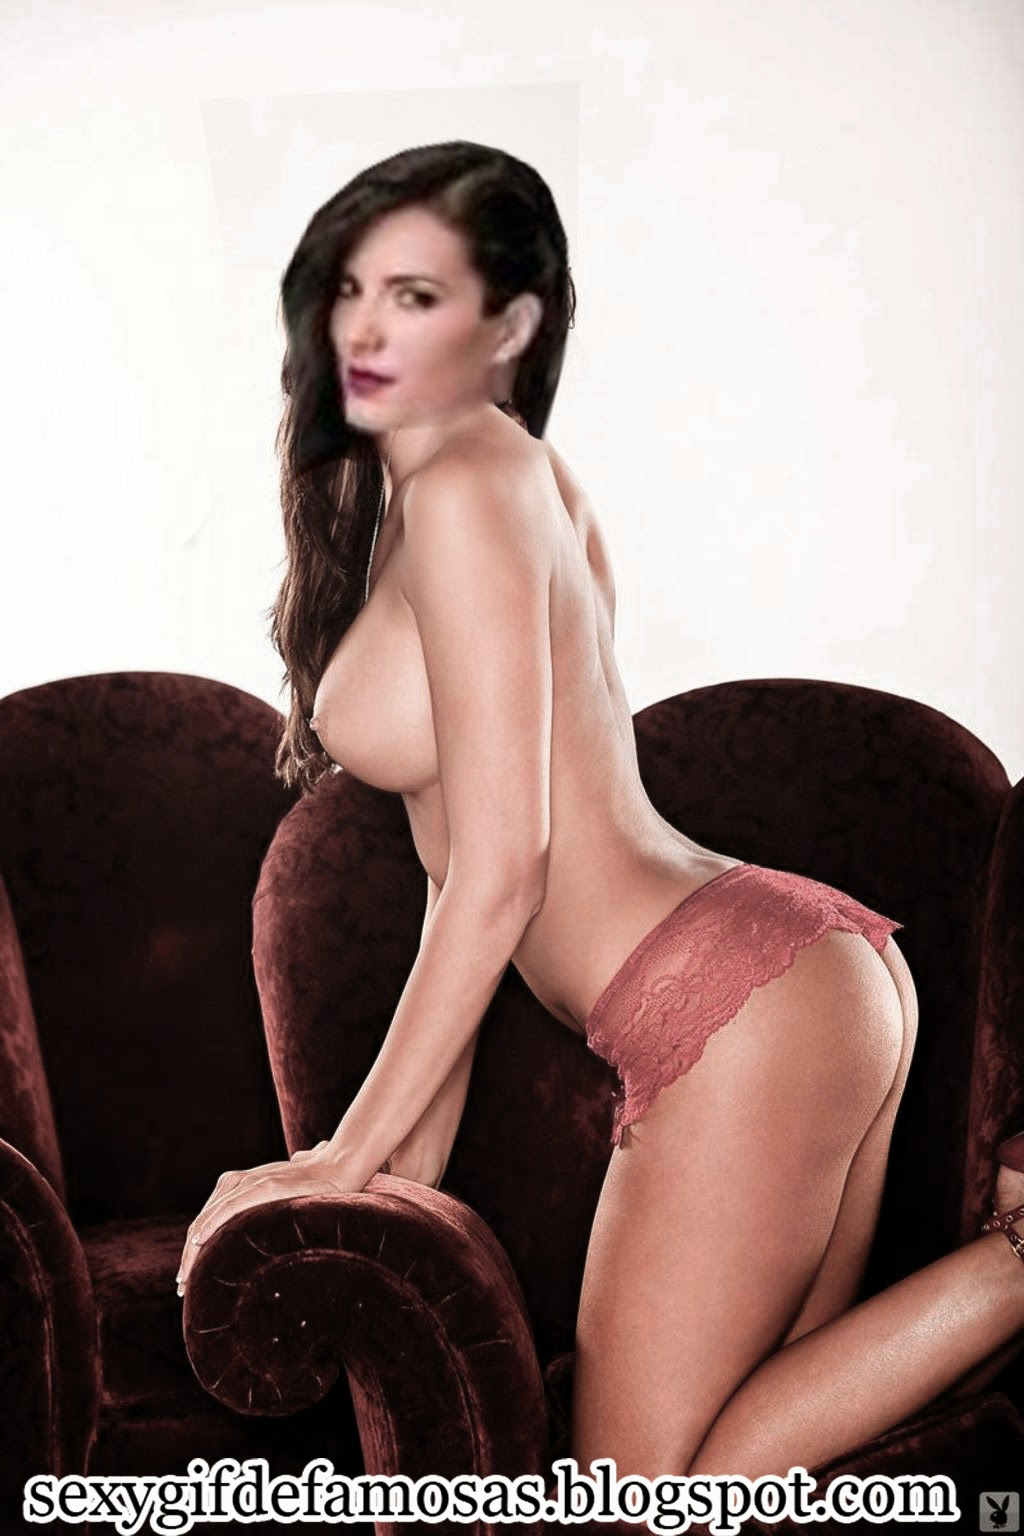 Seems magnificent Gaby espino interrasial porn consider